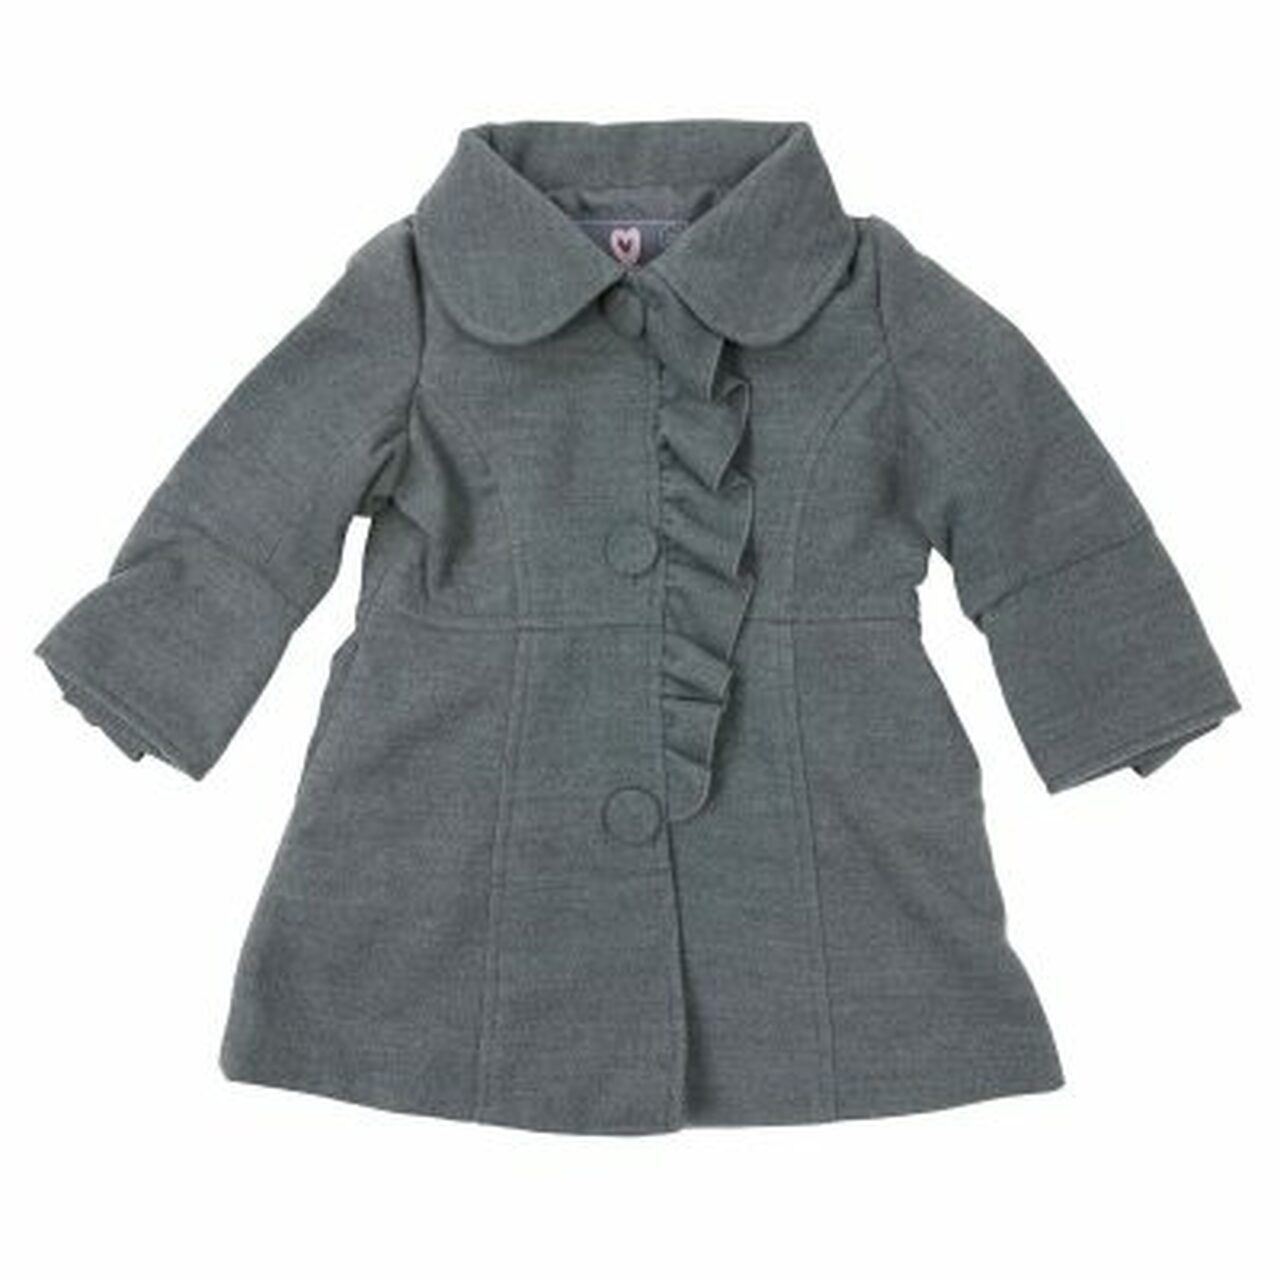 Korango Shooting Star Overcoat- Grey at Baby Barn Discounts The perfect winter accessory for little ones. Stay warm and look fantastic all winter long with this stylish overcoat.